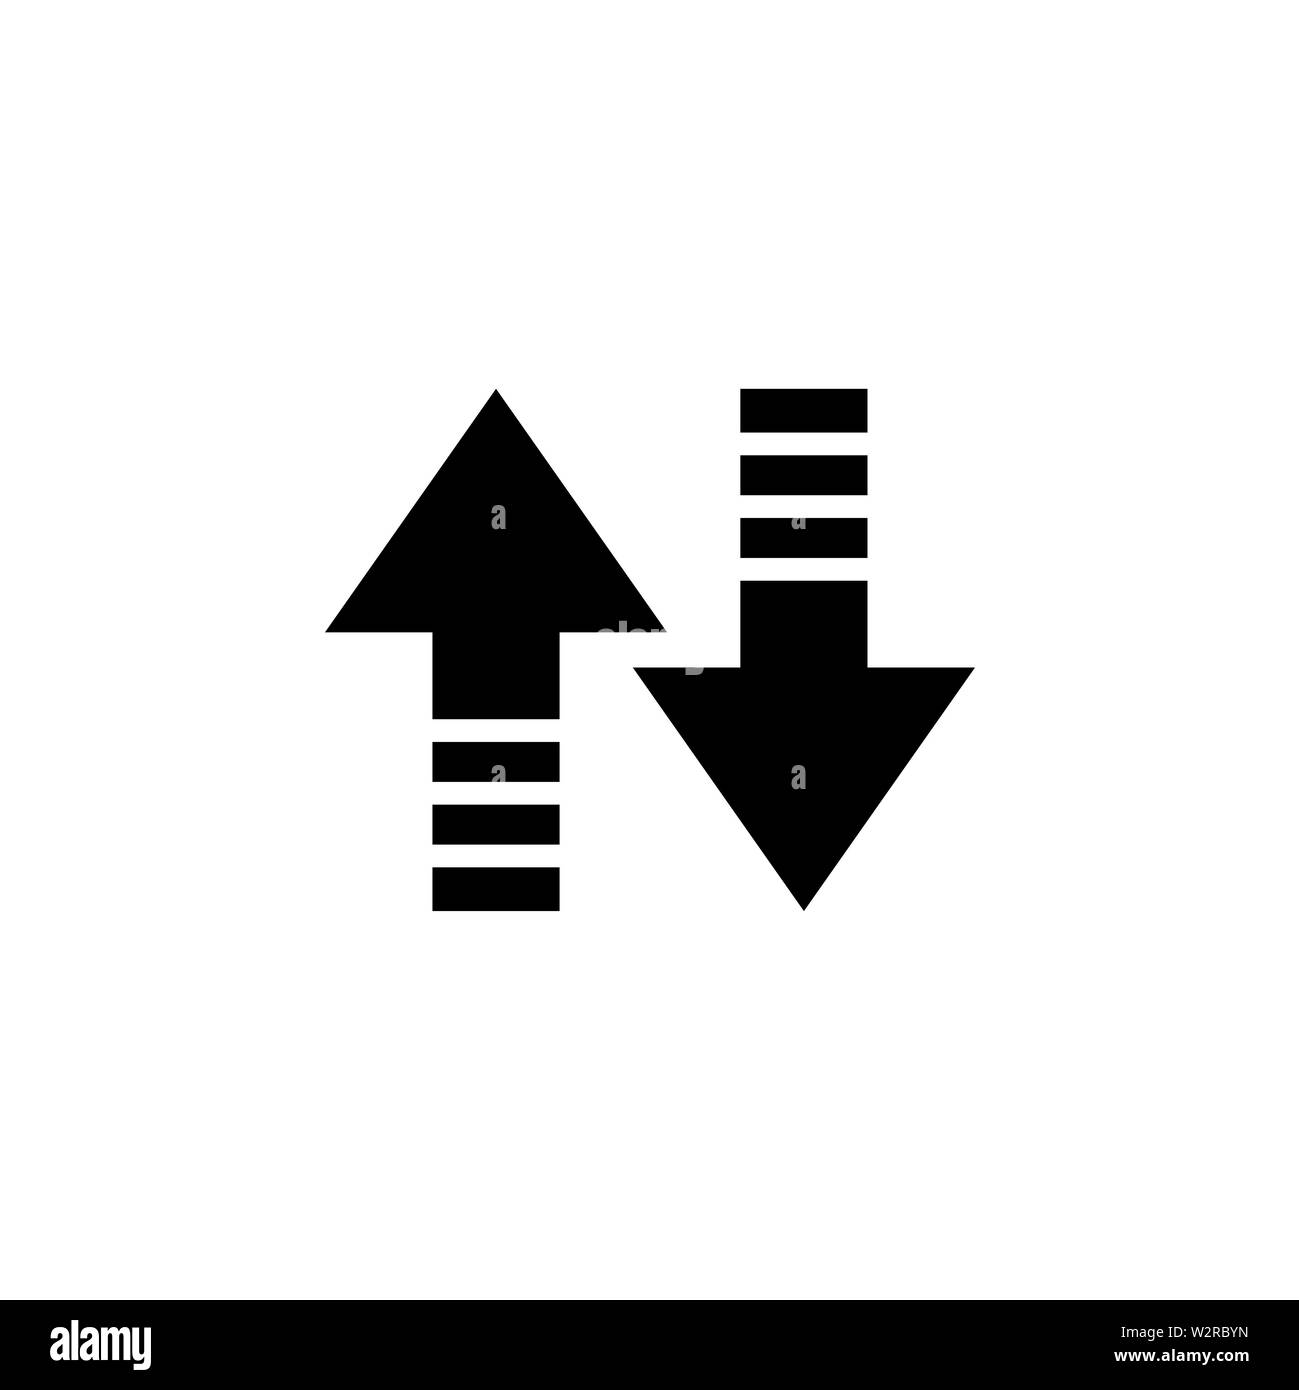 Up-Down Arrow Icon In Flat Style Vector For Apps, UI